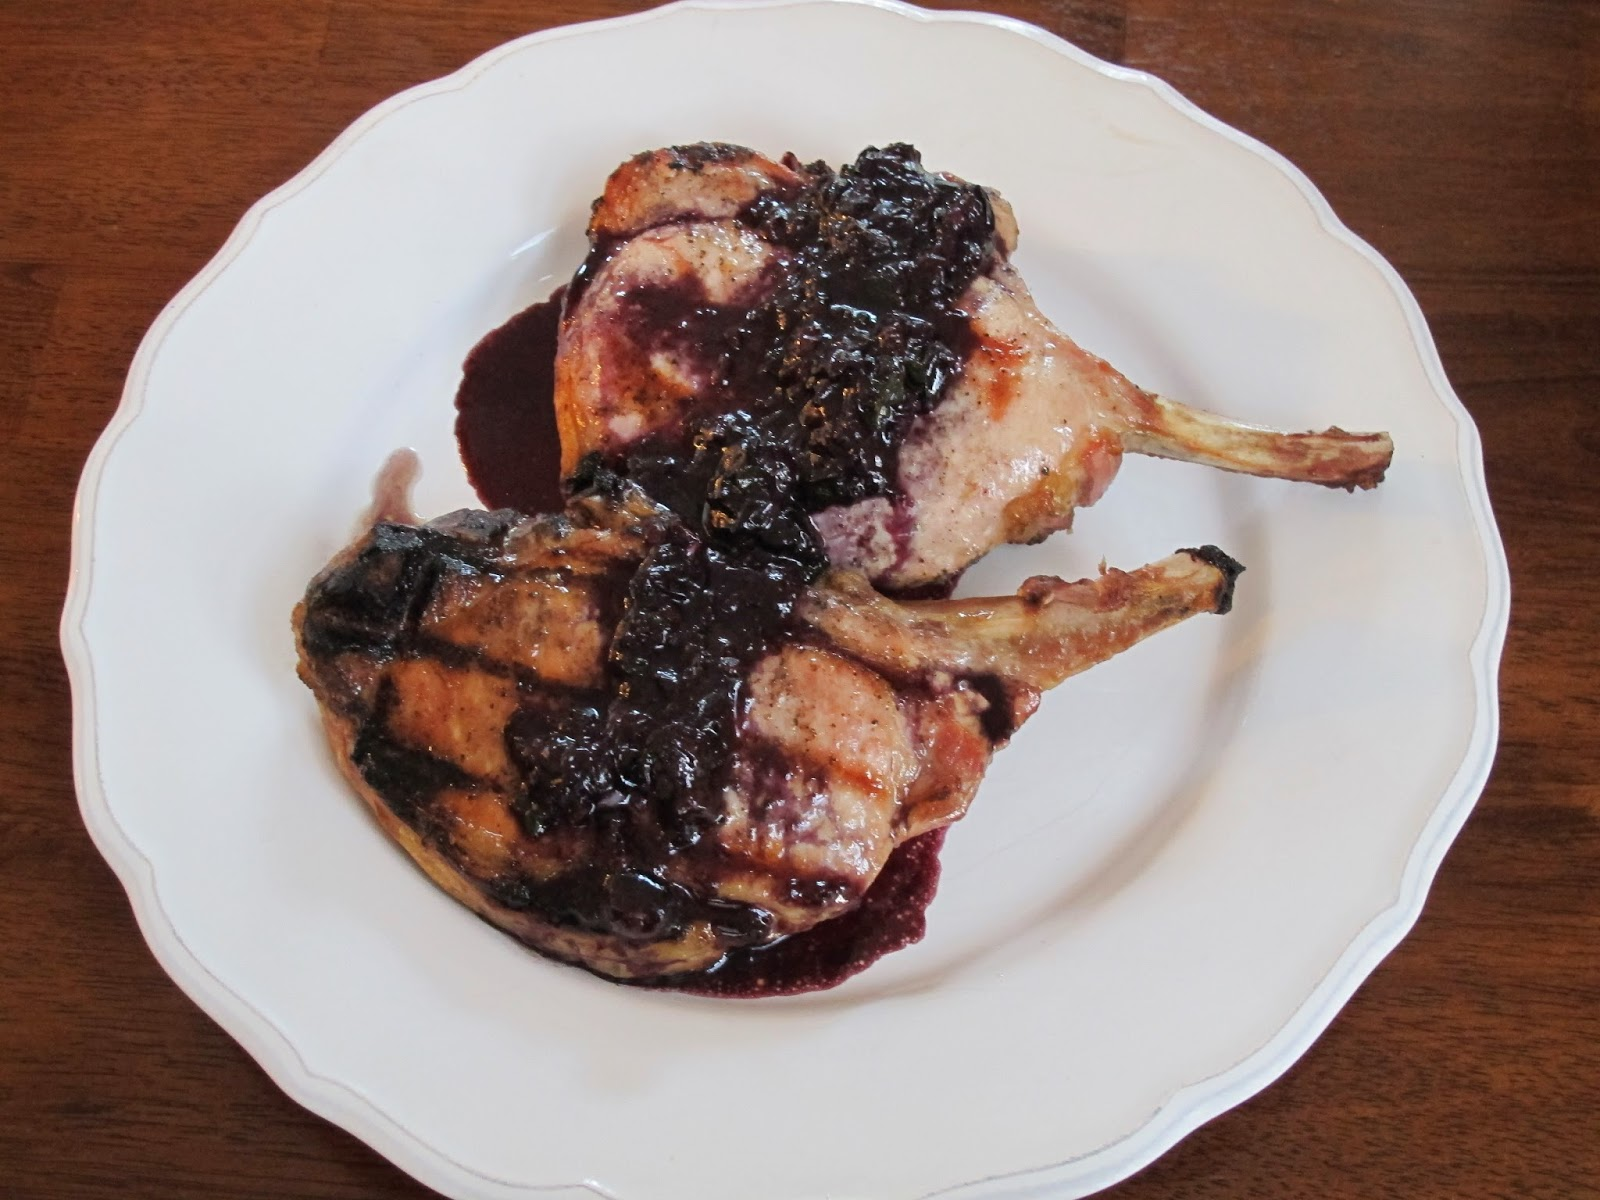 Grilled Bone-In Pork Chops with Balsamic Blueberry Sauce